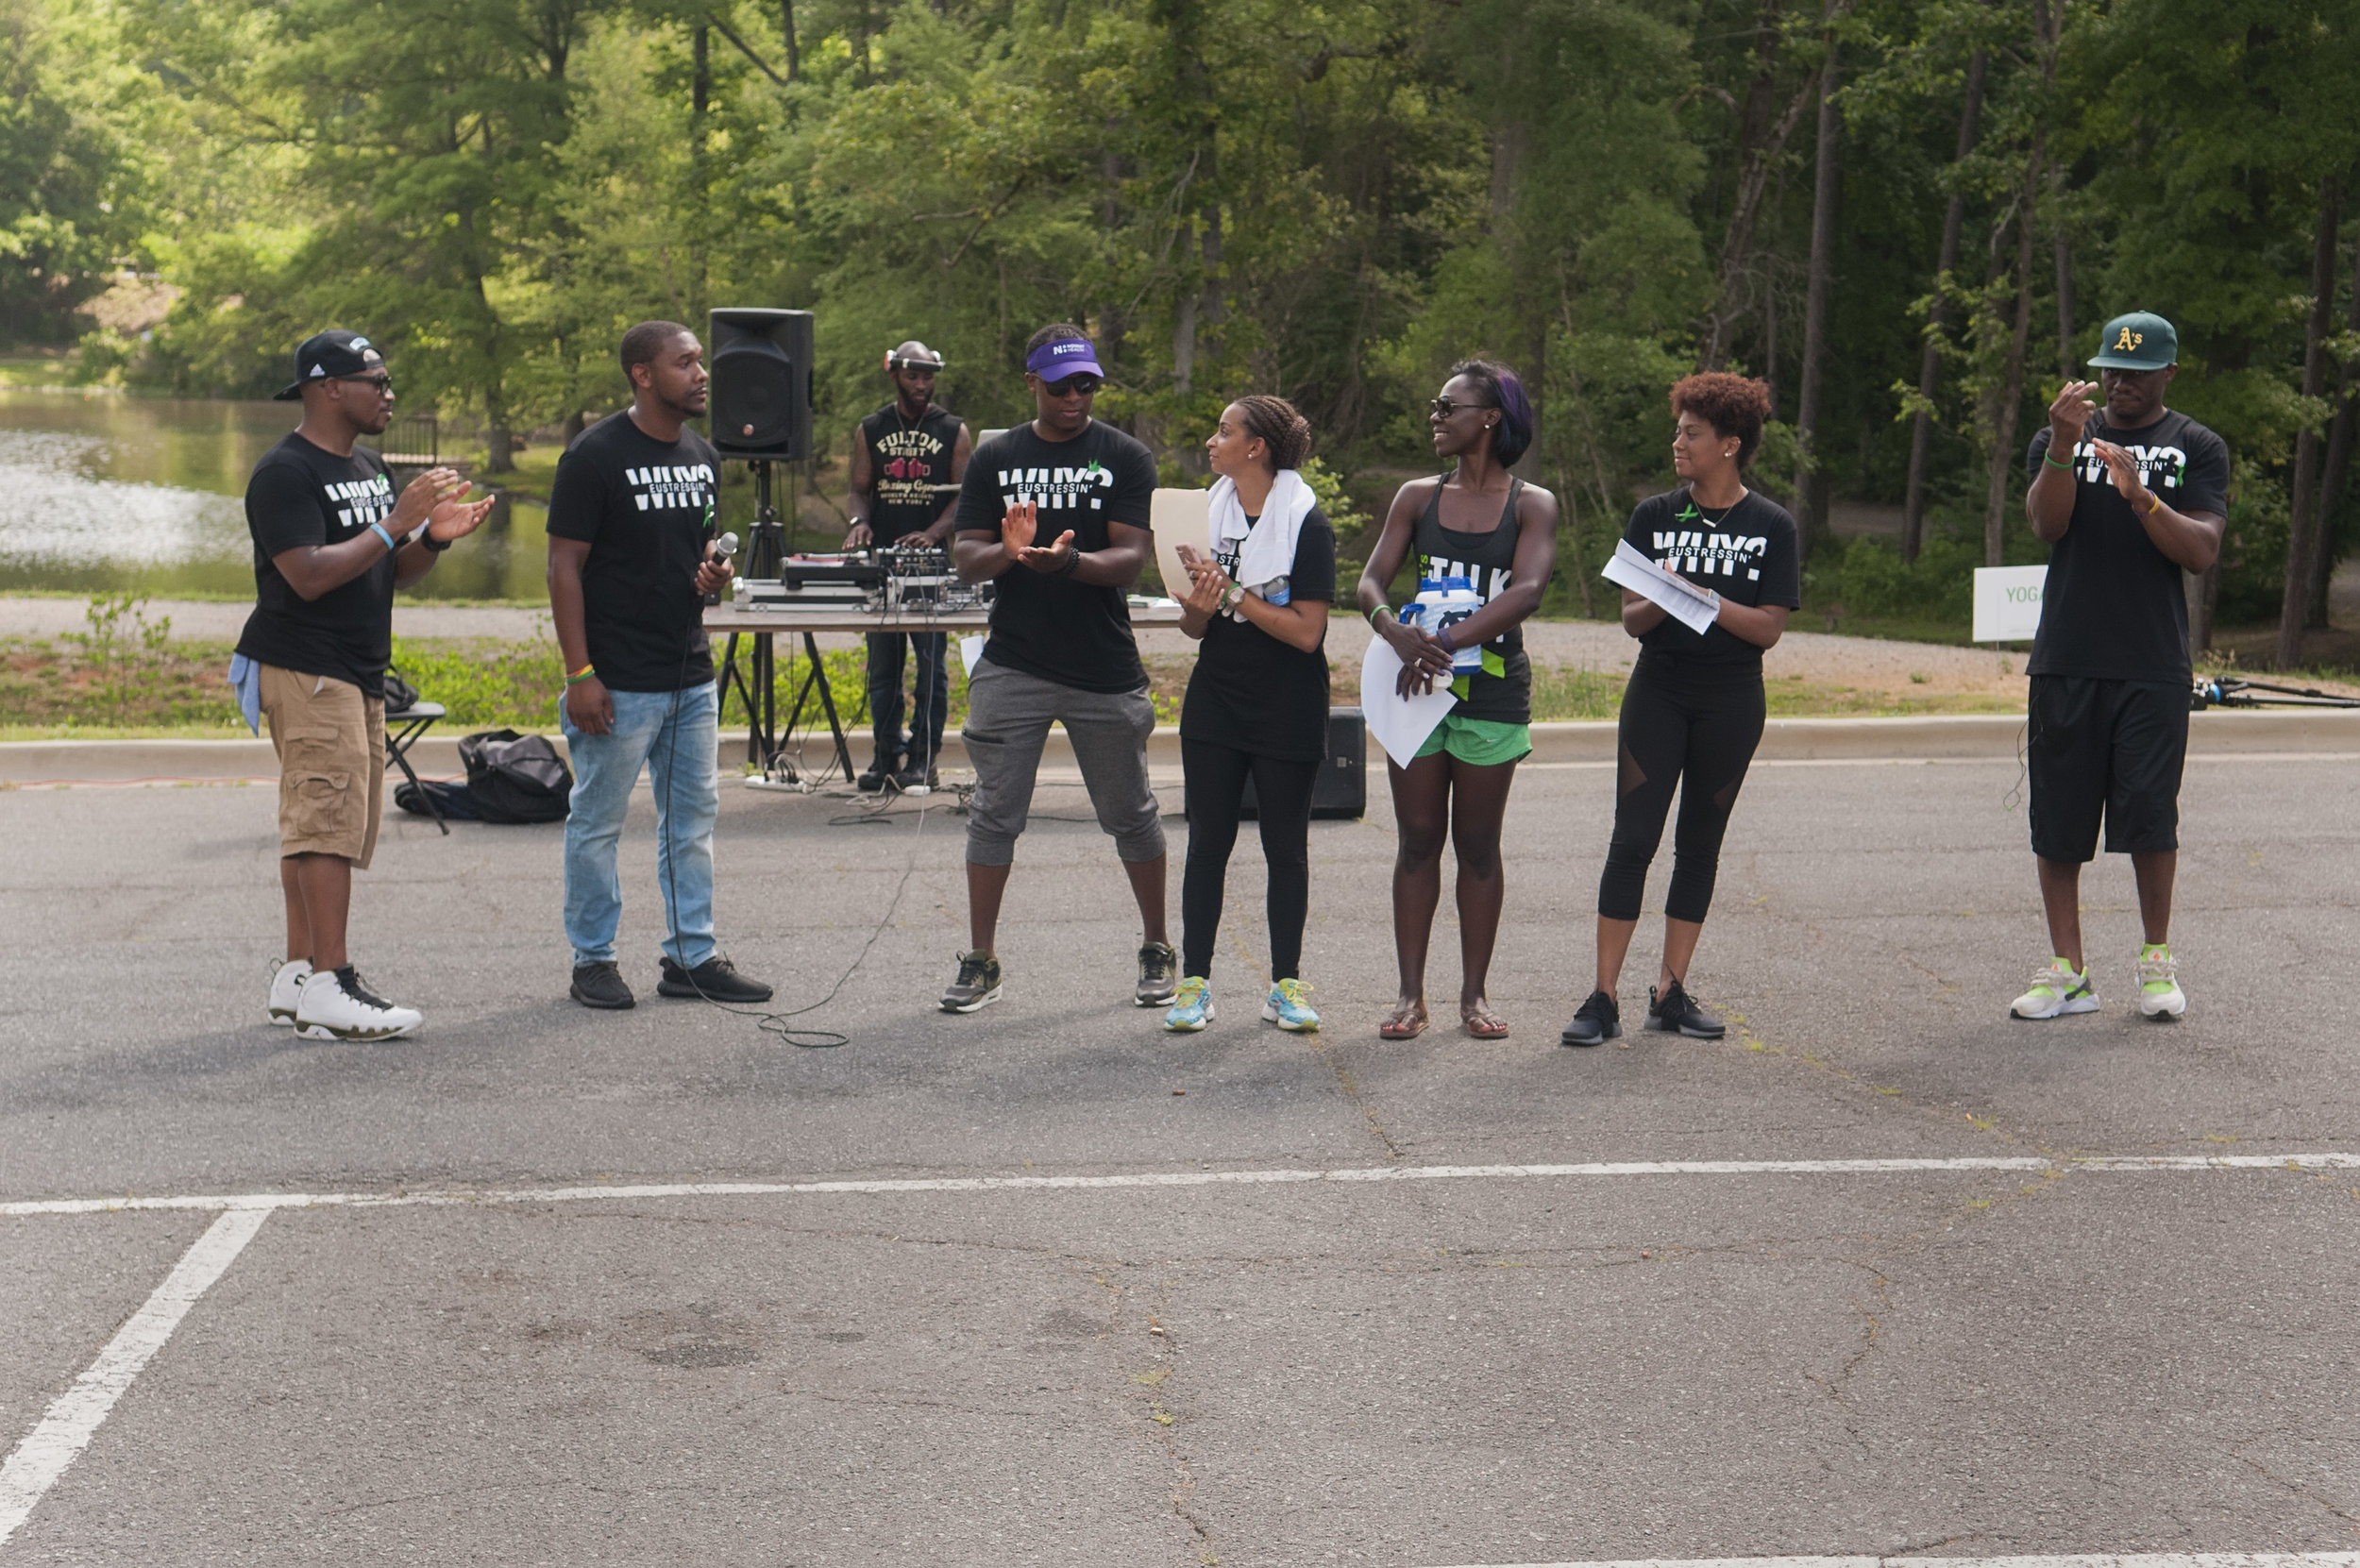 2nd Annual Let's Talk About It Mental Health Awareness Walk @ Park Rd Park 5-20-17 by Jon Strayhorn 107.jpg